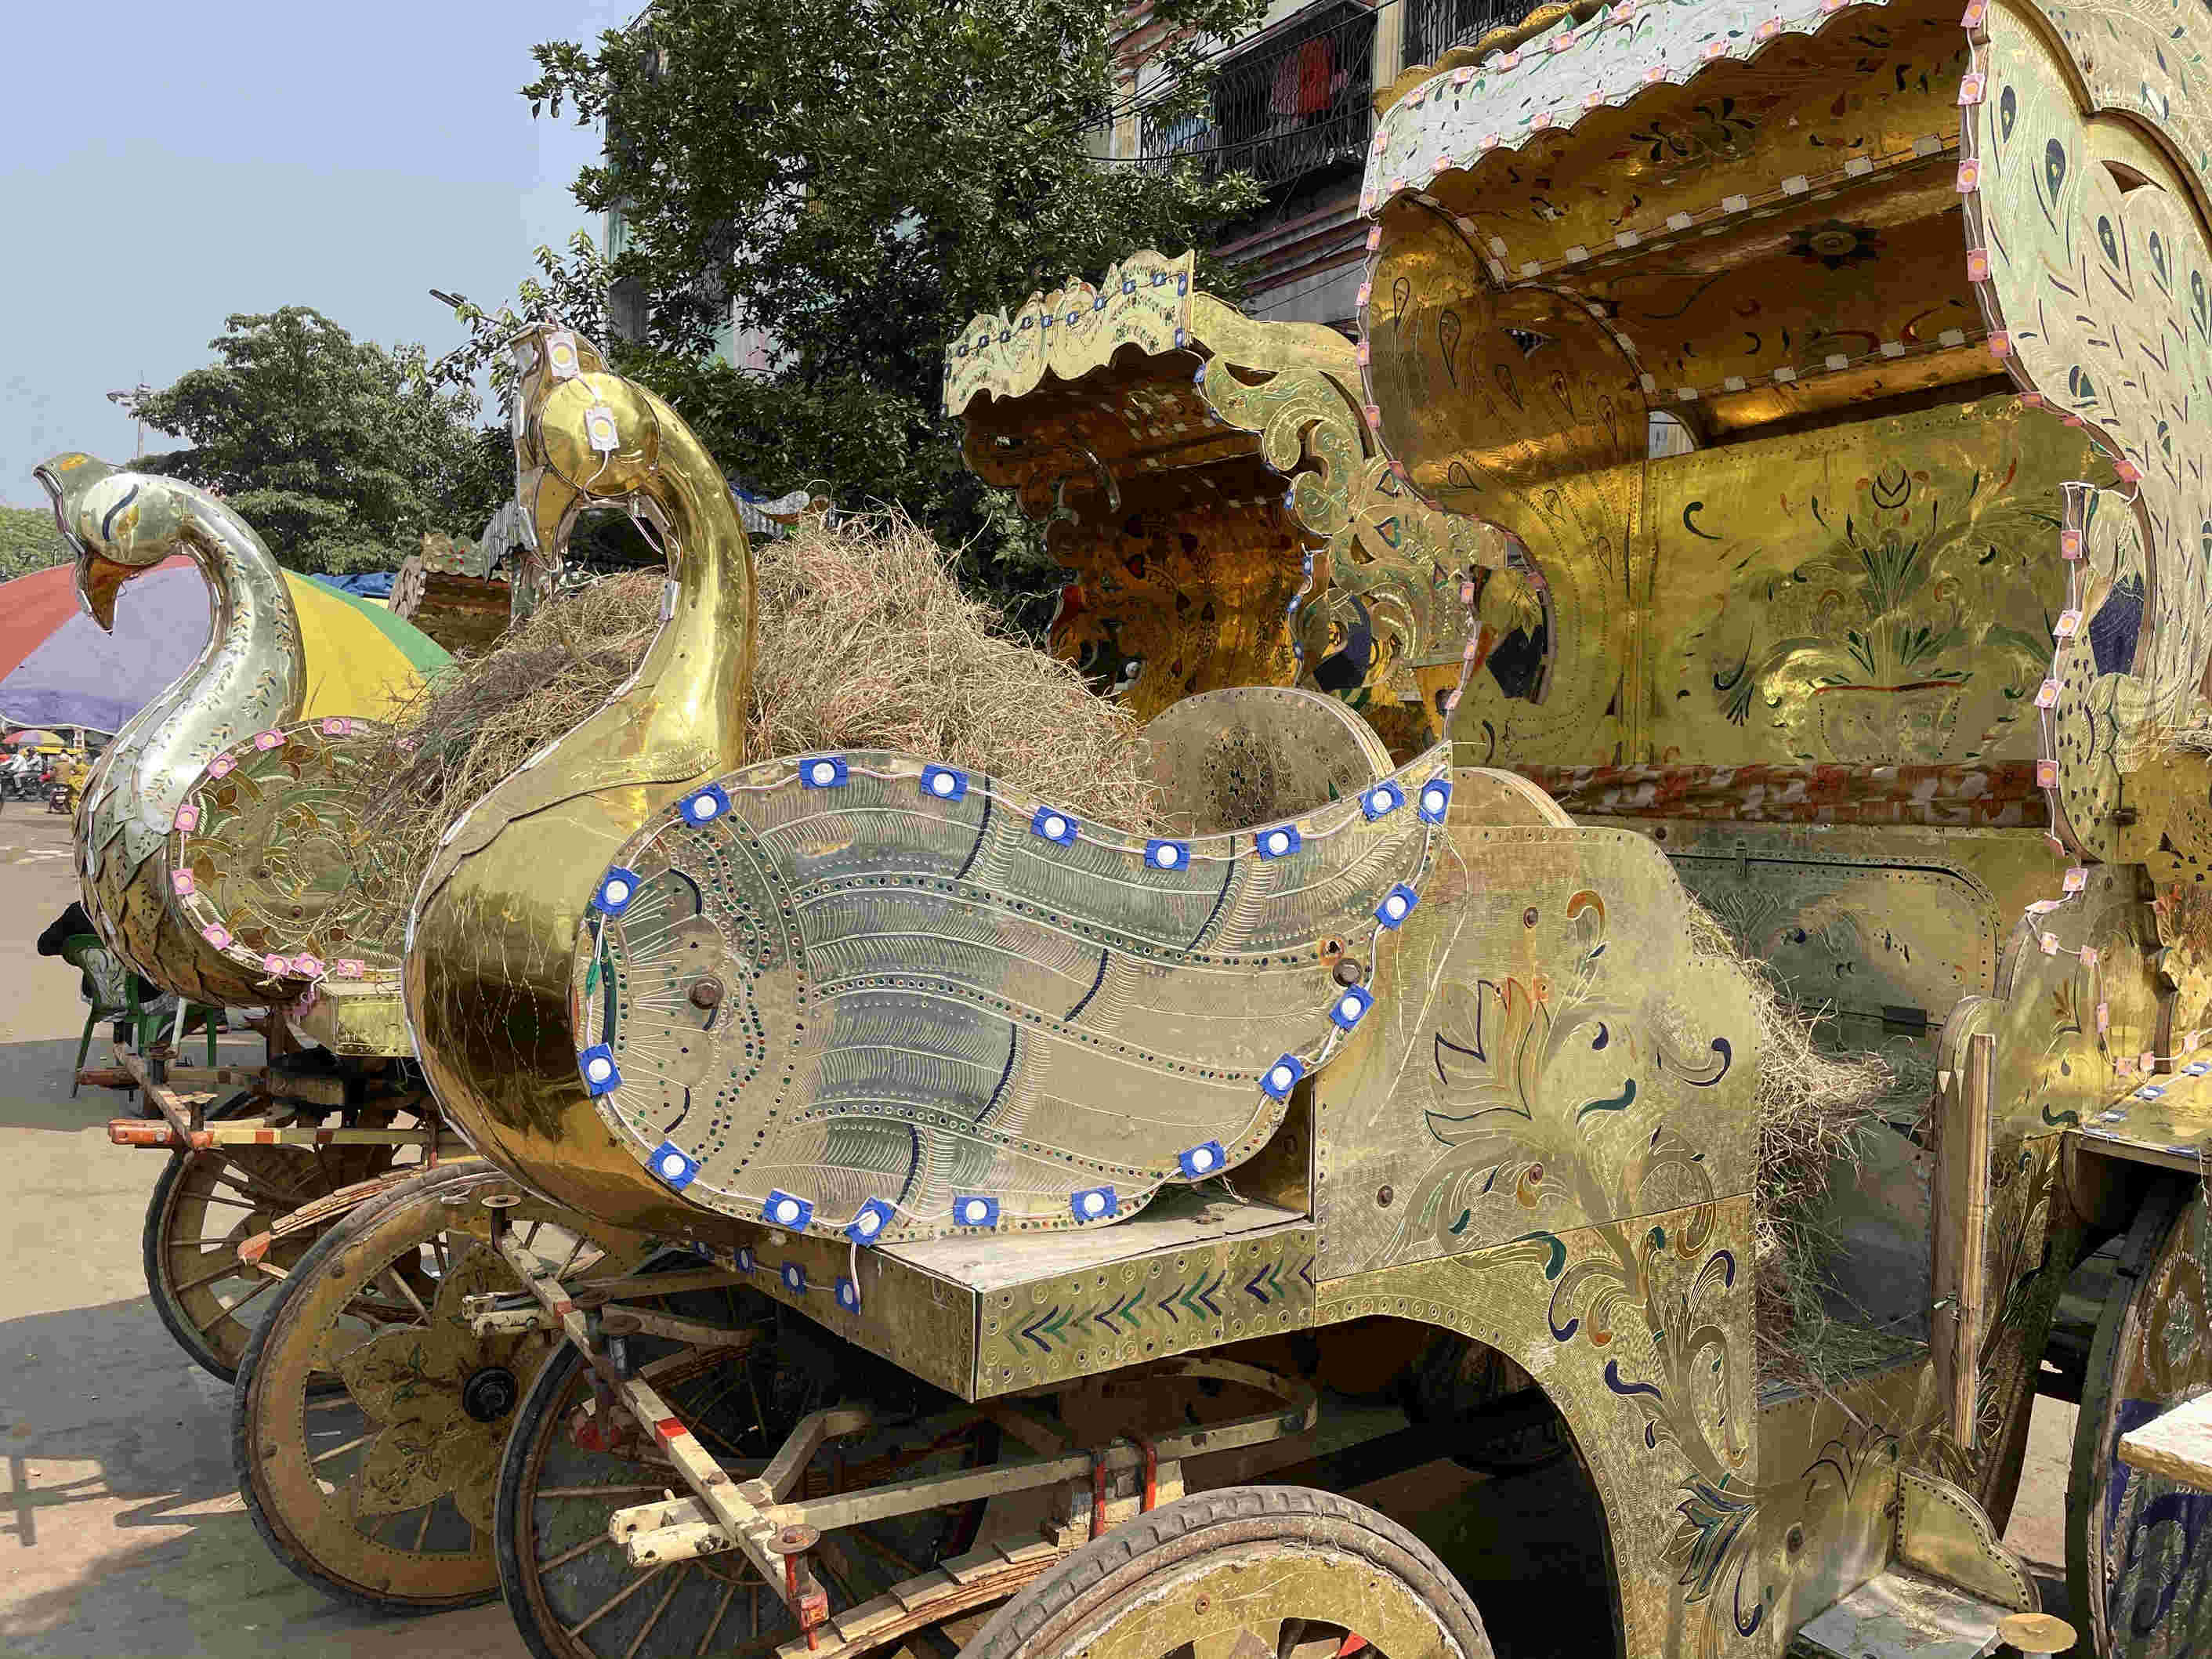 Every detail on the horse-drawn chariot gets captured without any overexposure.